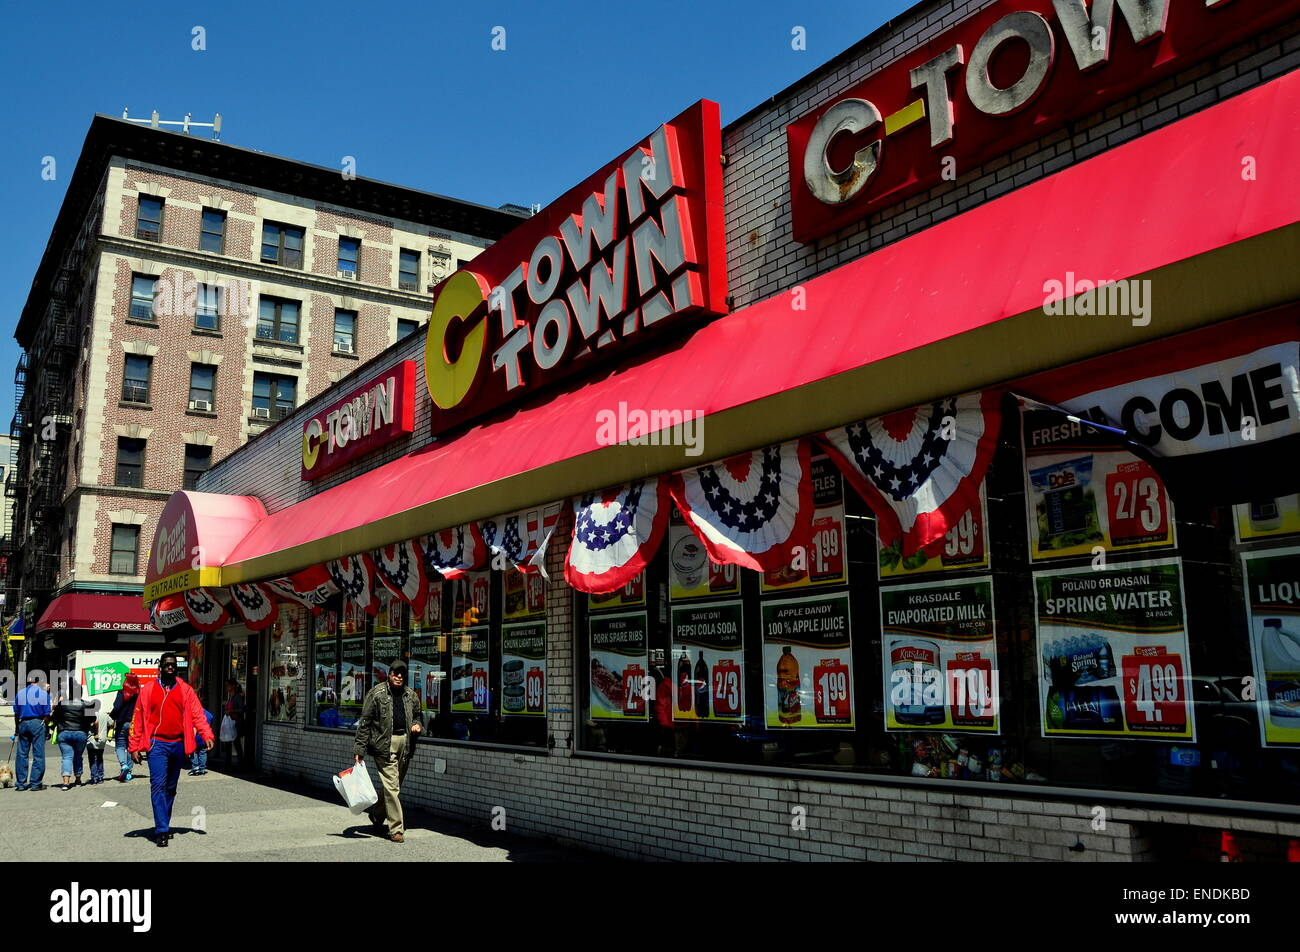 New York City: C-Town Super Market with patriotic red, white